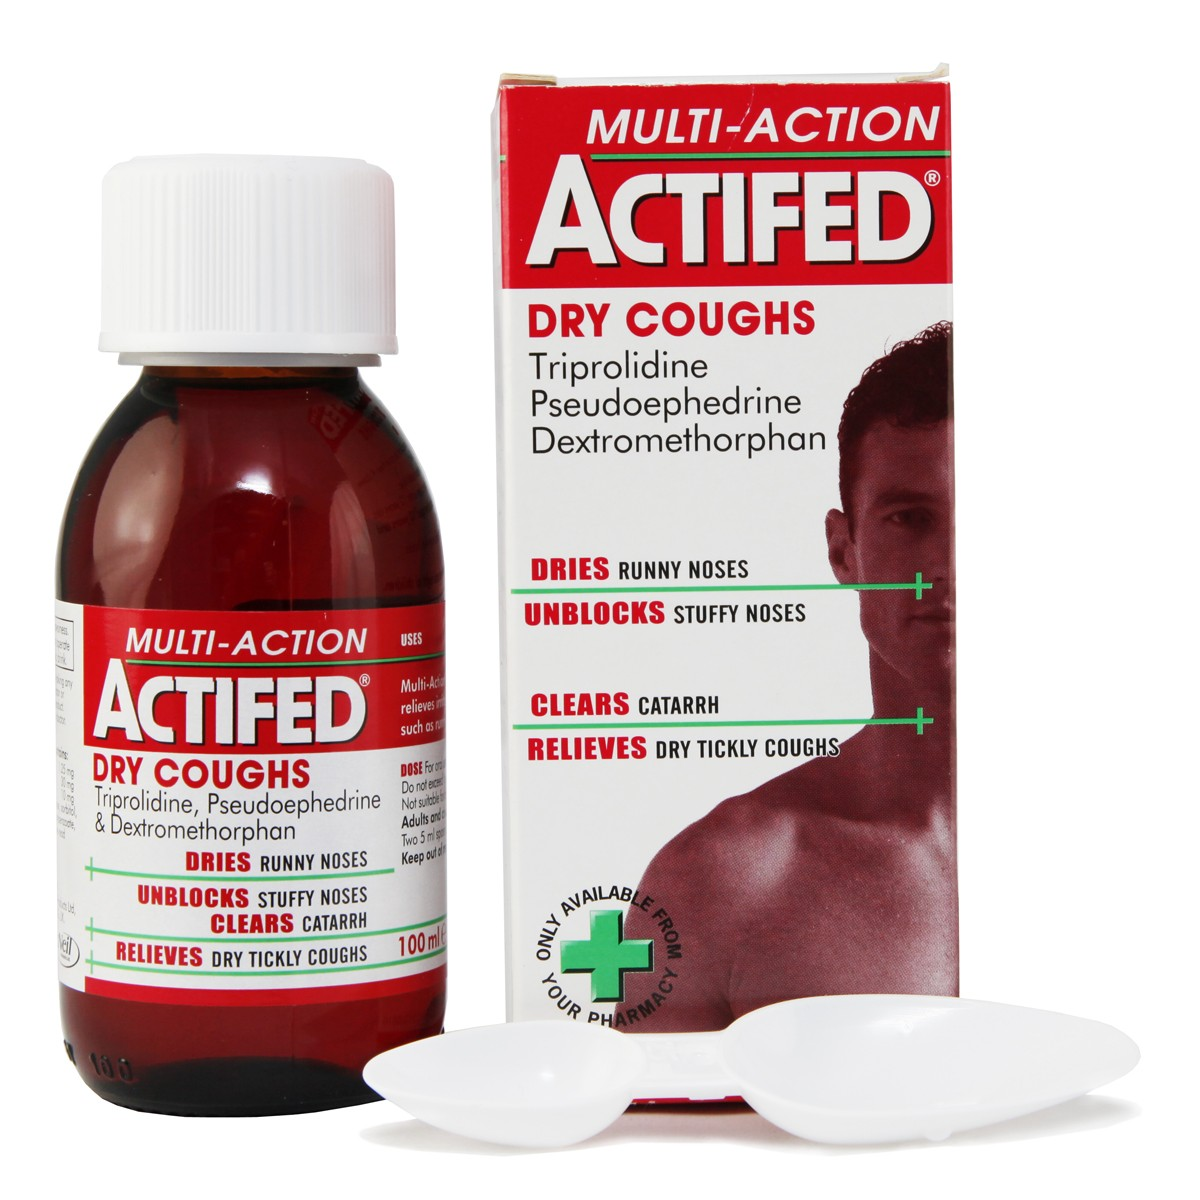 Actifed Multi-Action Dry Cough Liquid